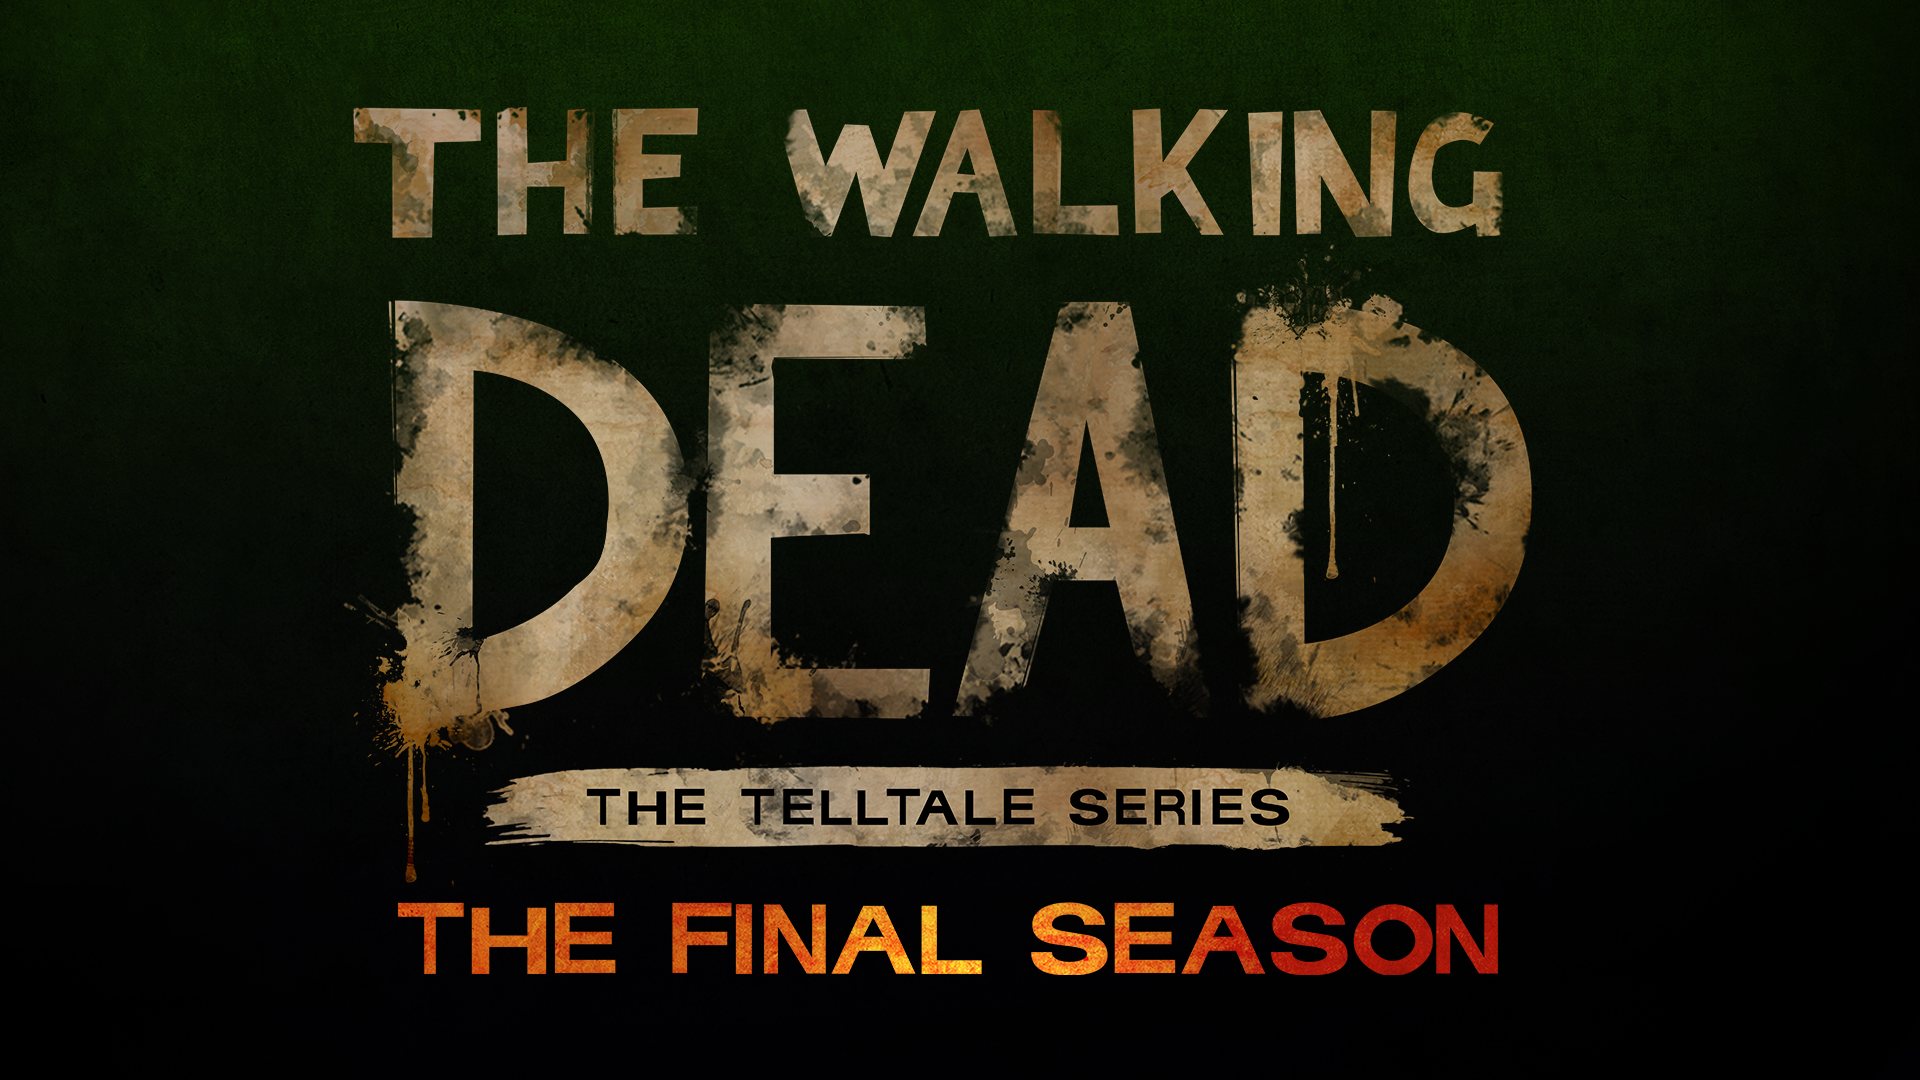 Telltale's The Walking Dead Gets a Final Season in 2018